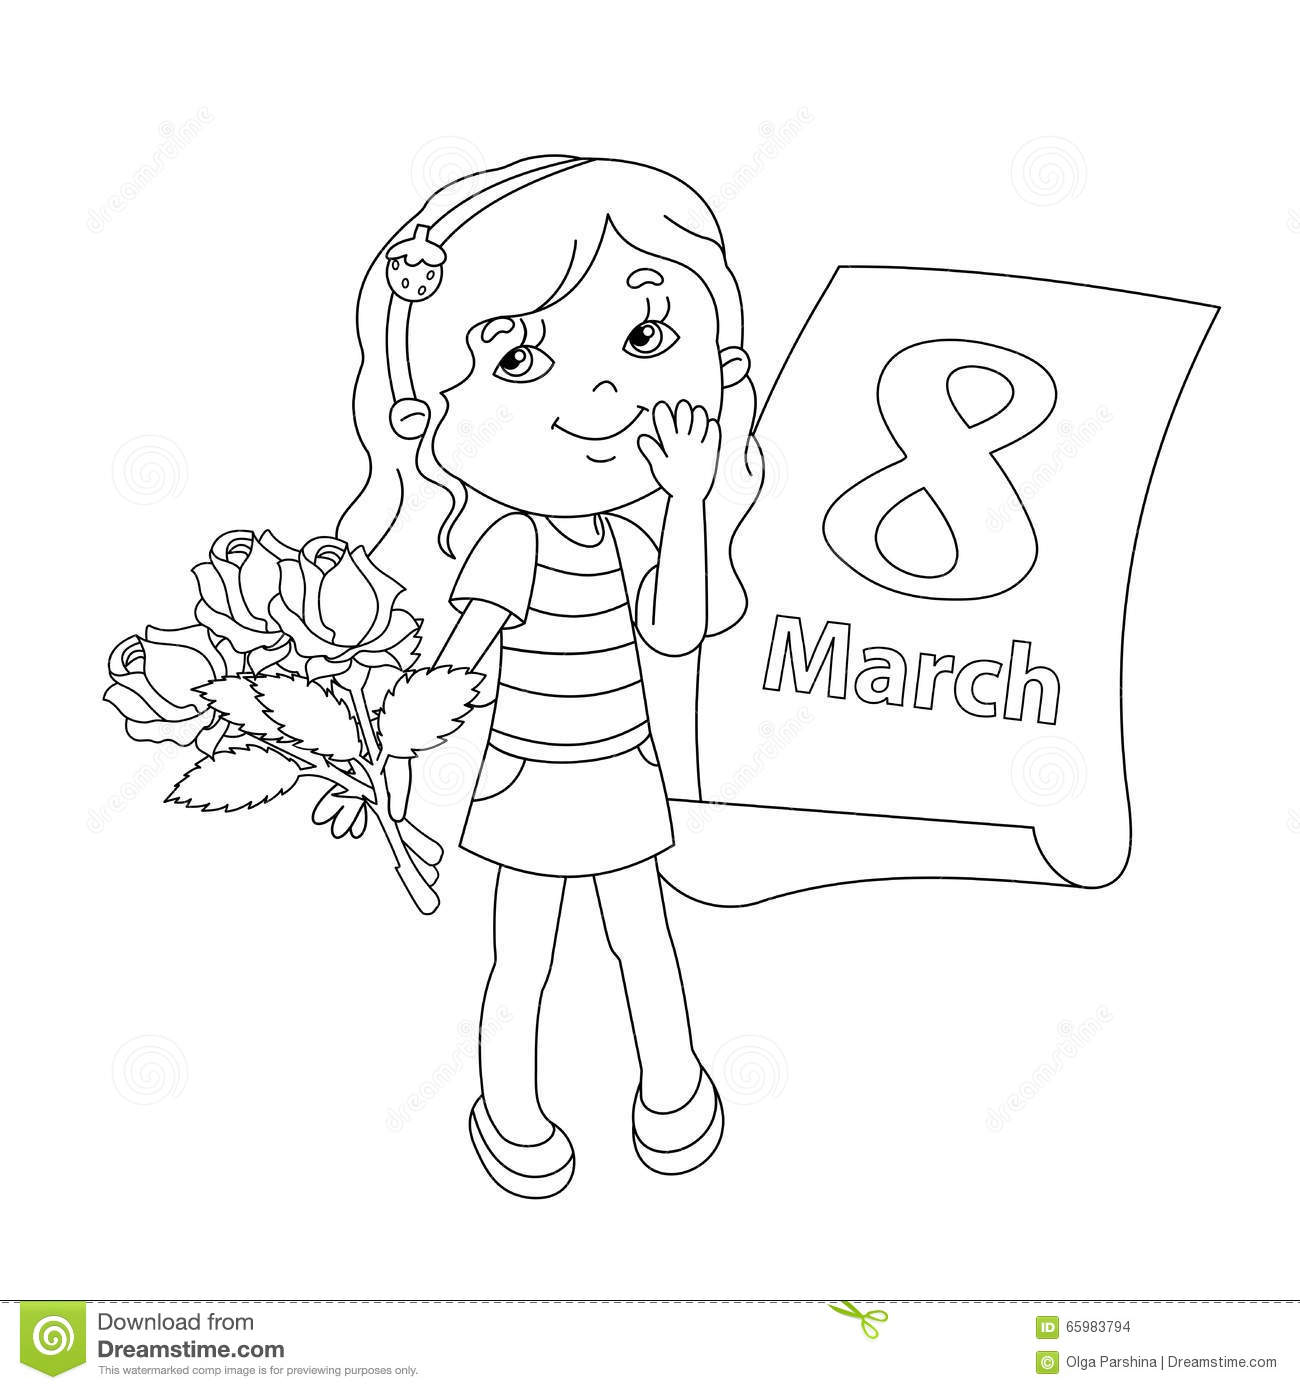 Coloring page outline of girl with flowers march 8